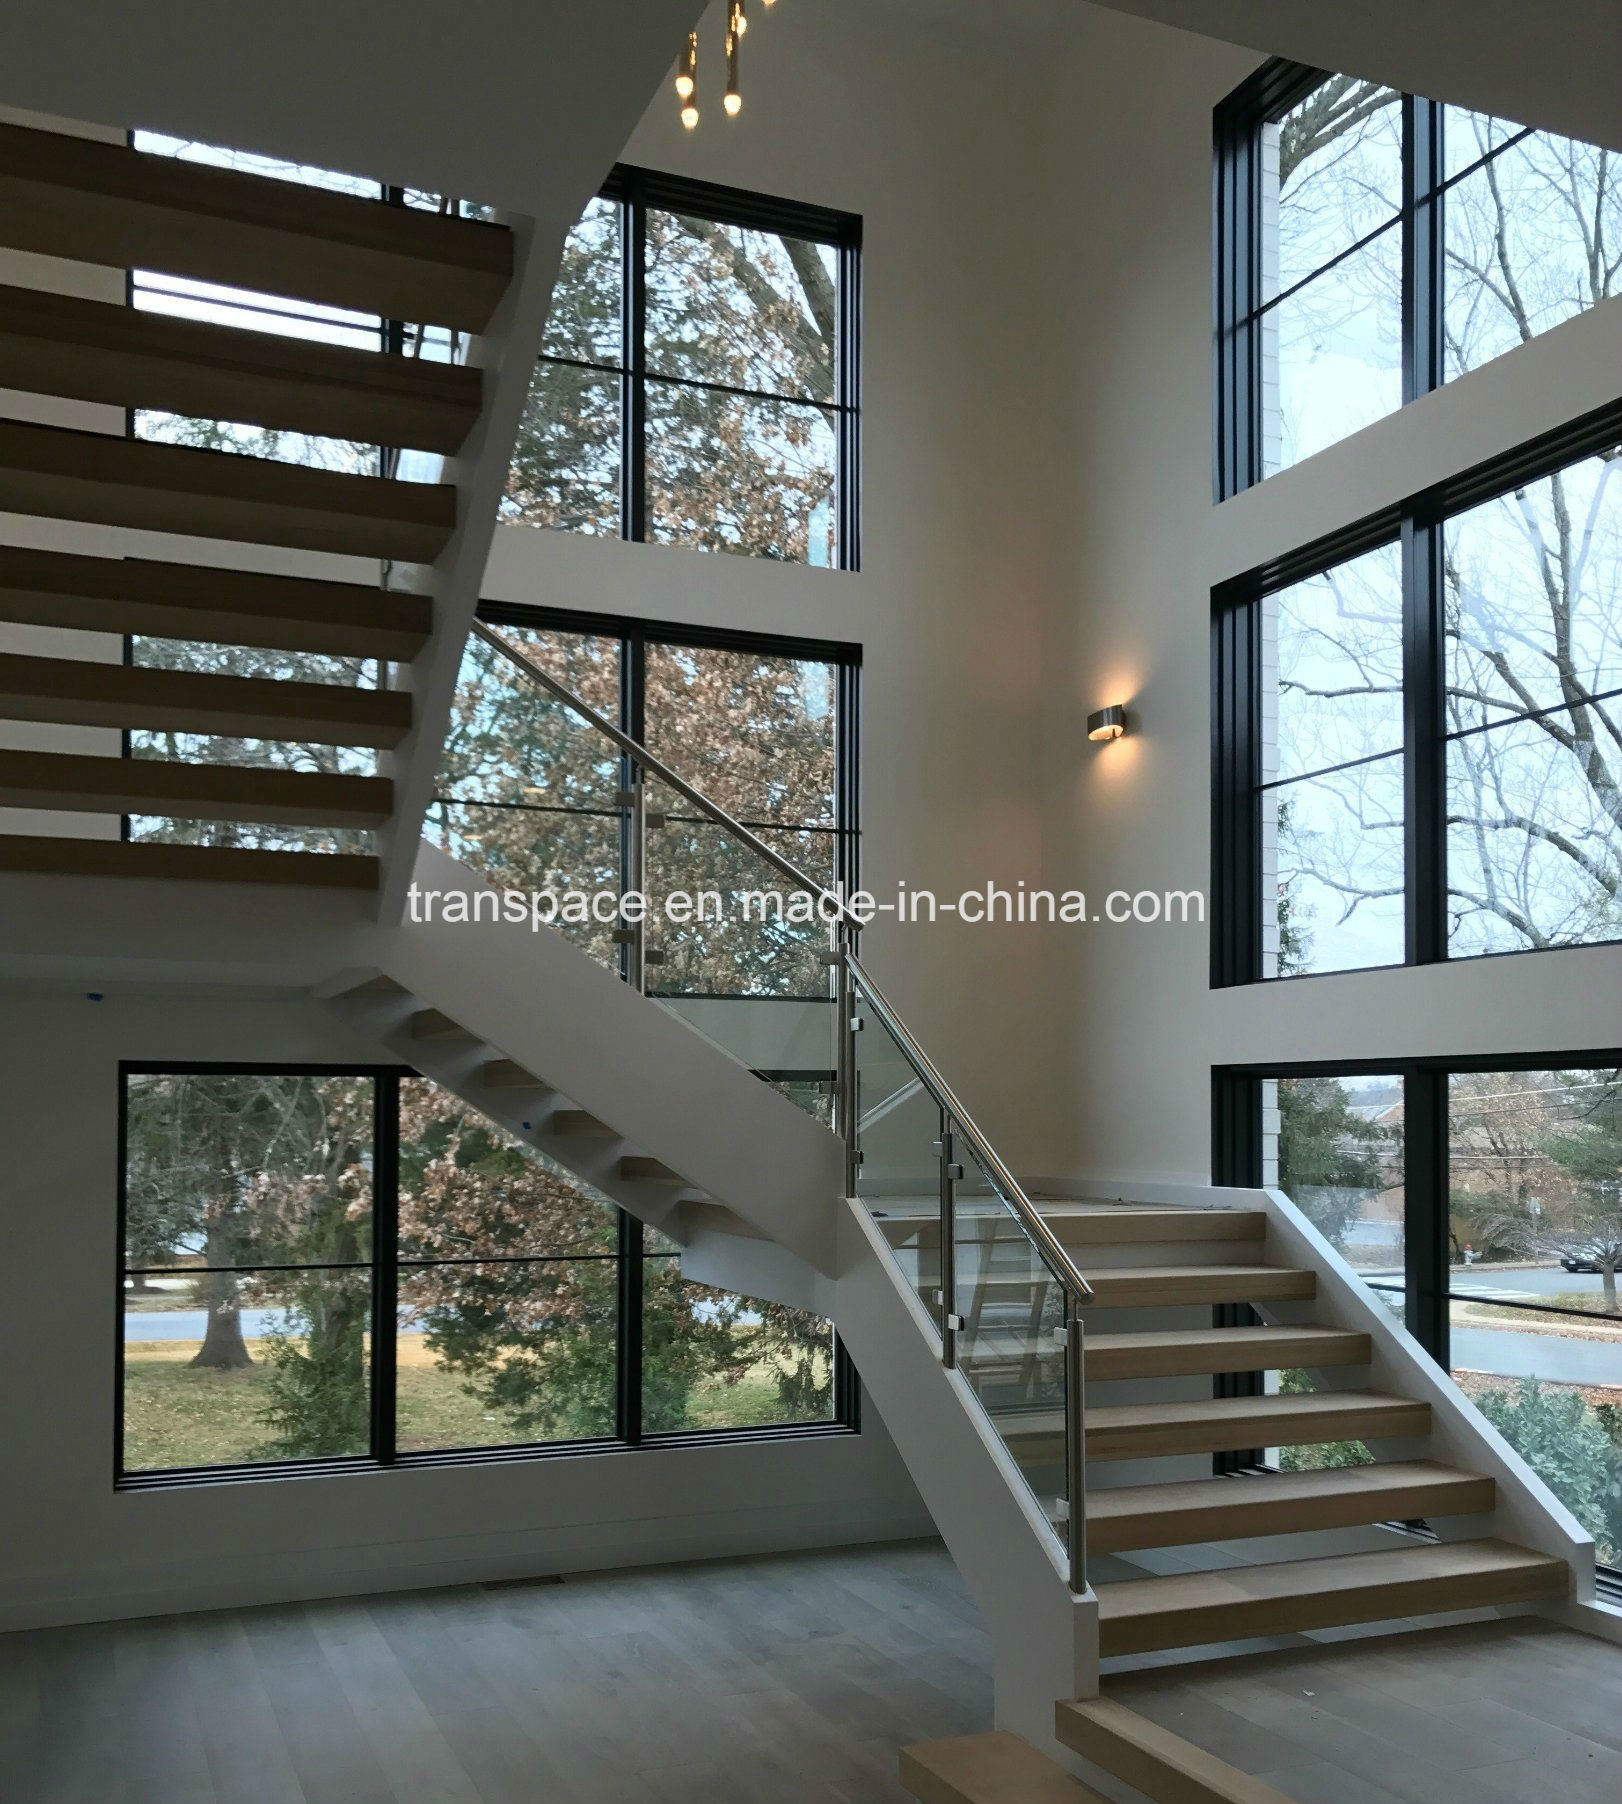 China Modern Steel Wood Stair With Glass Balustrade For Villa | Stairs Window Glass Design | Classic | Foreign Window | Simple | Stairwell | Grill